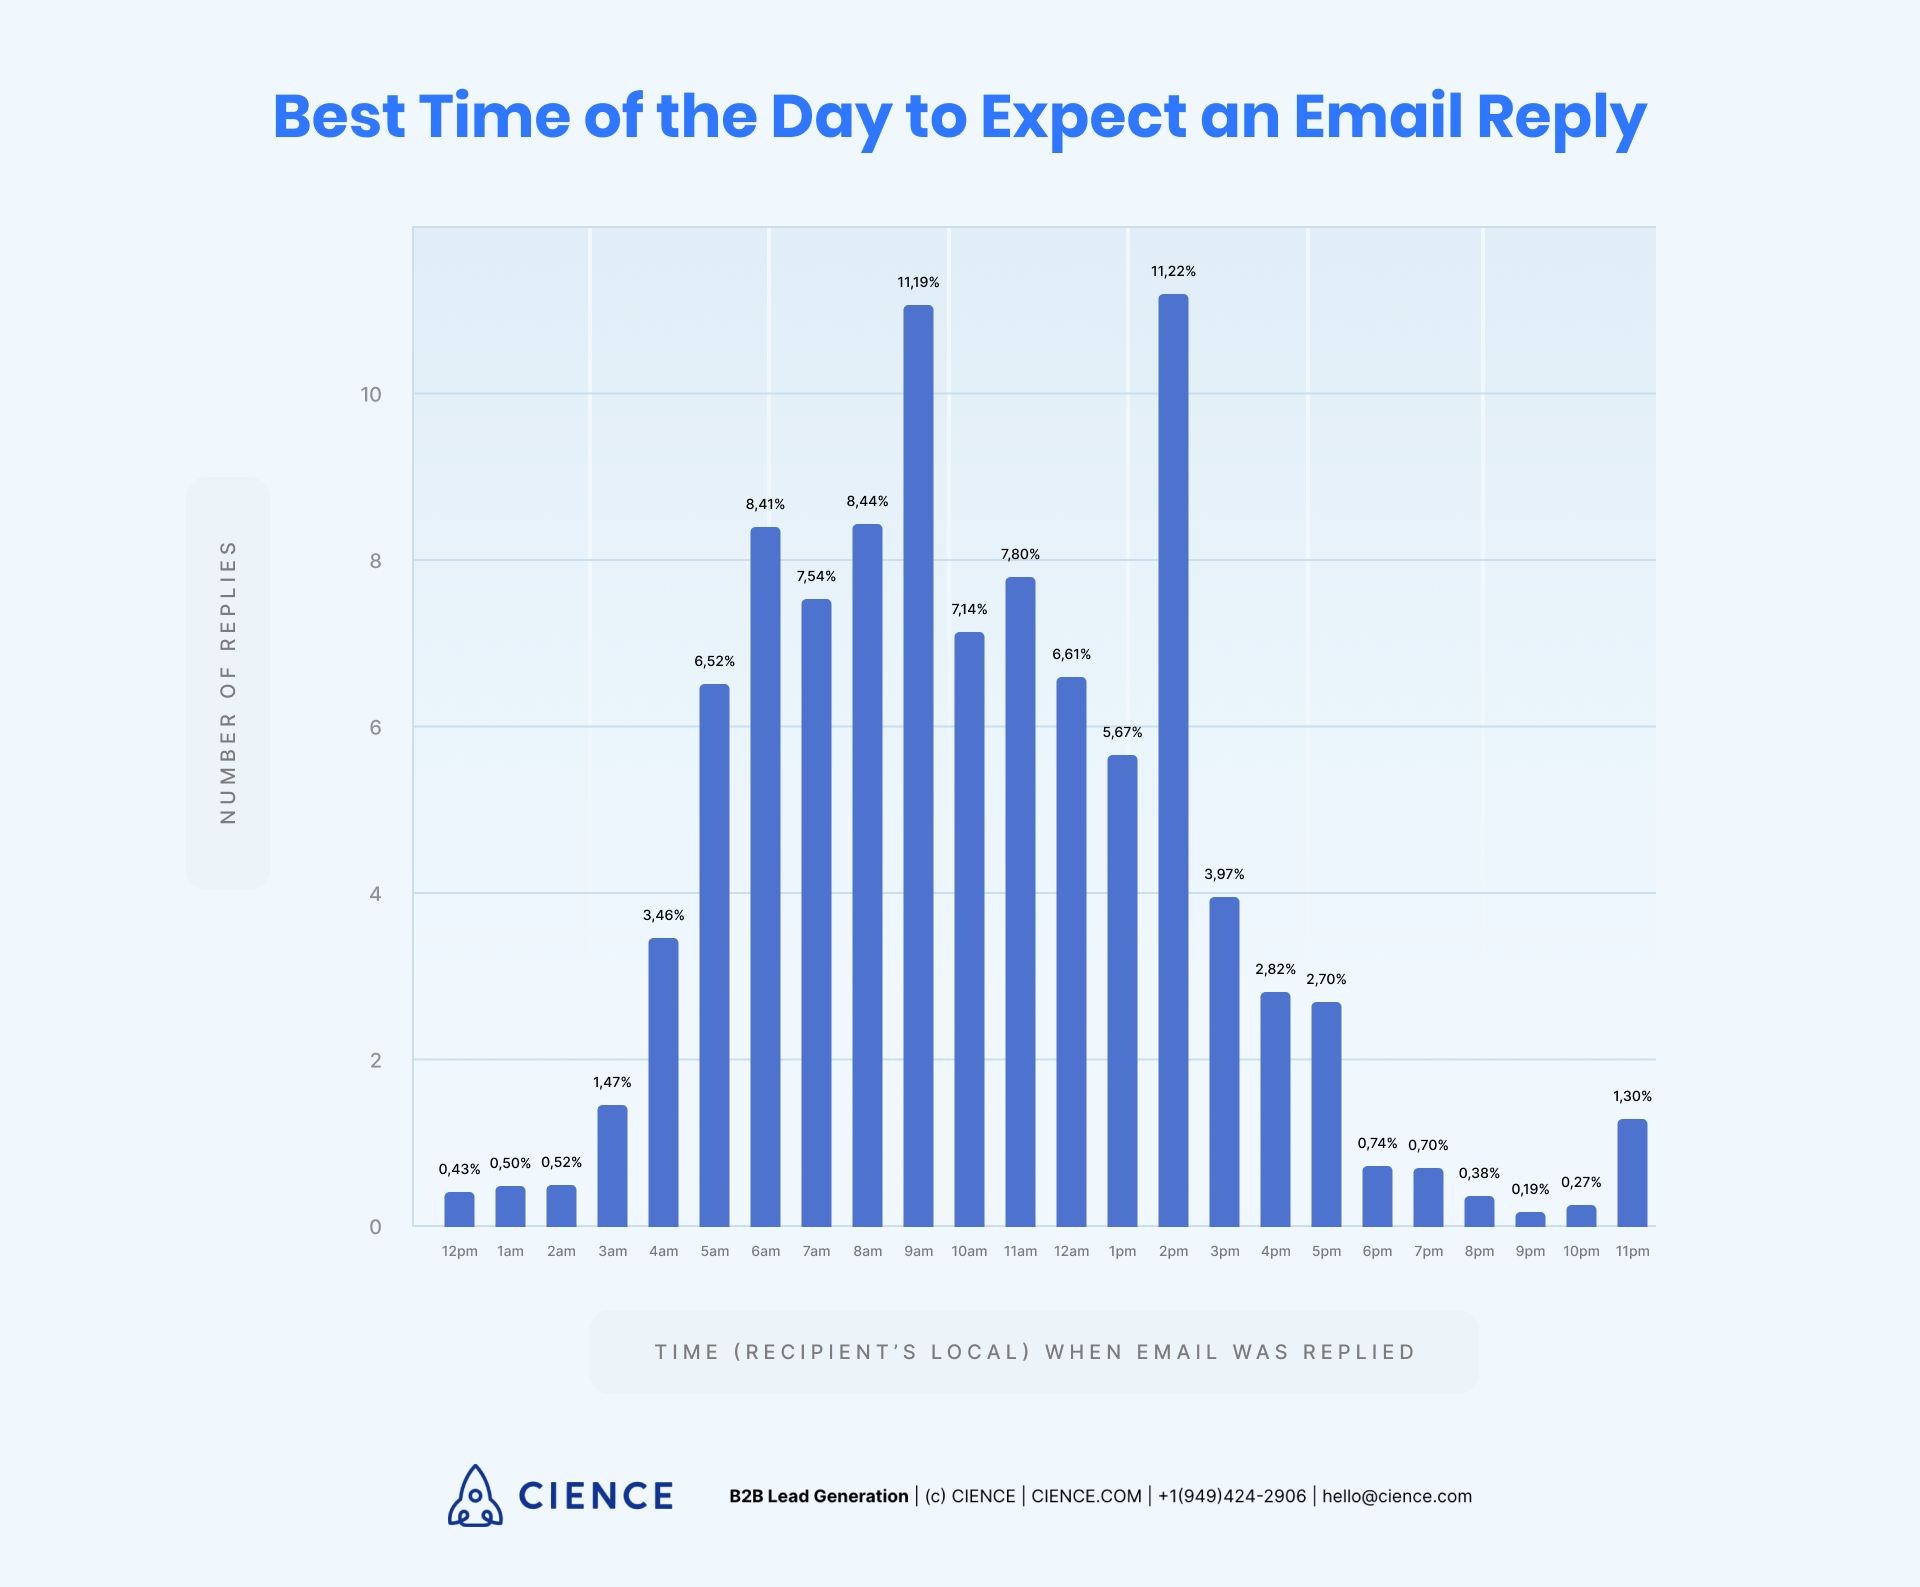 Best time of day to expect an email reply